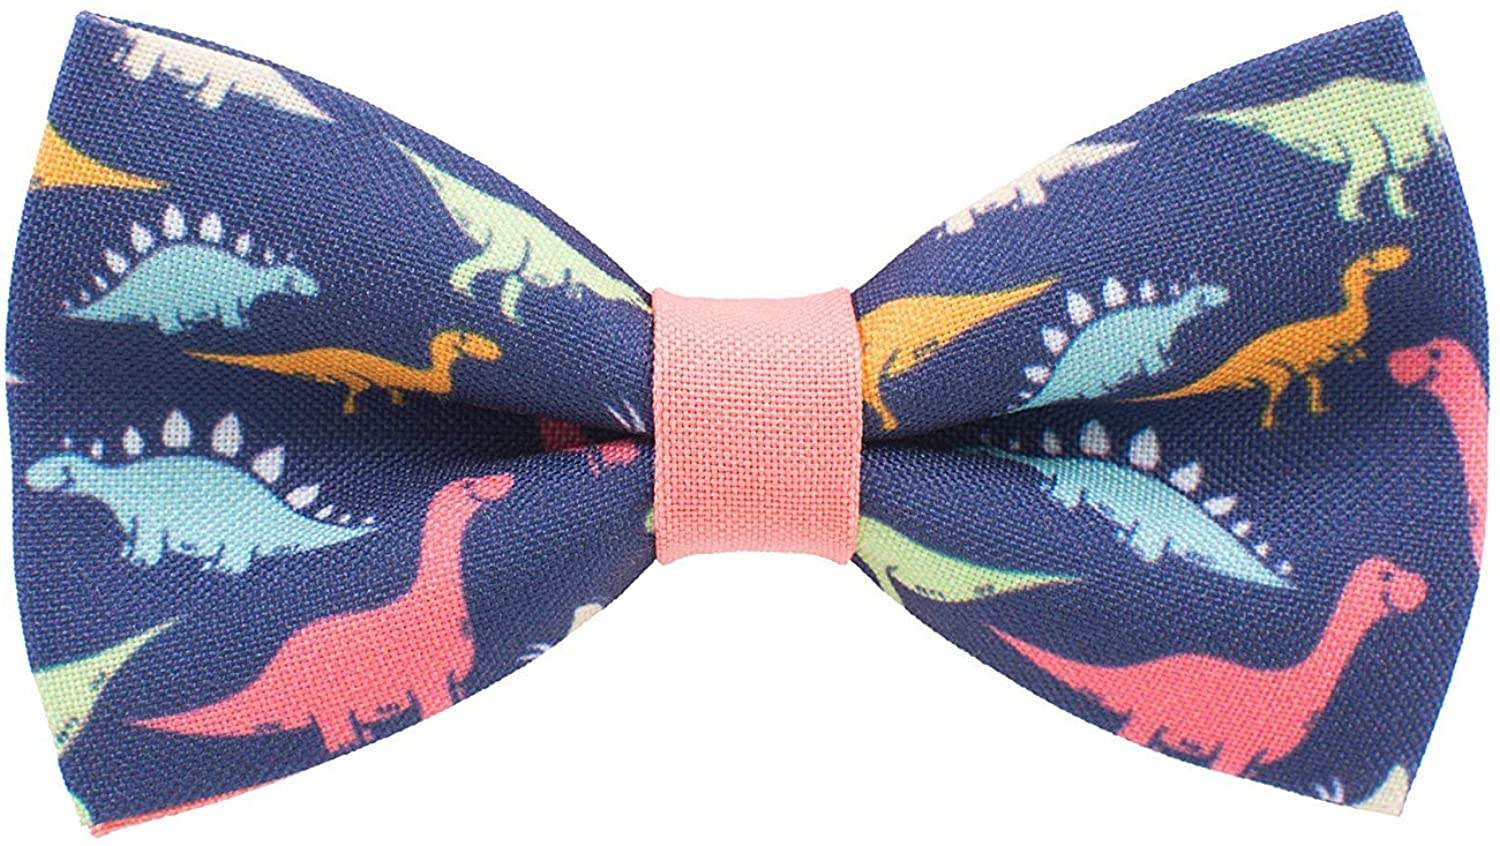 Dinosaurs bow tie pre-tied pattern blue-peach colors unisex shape, by Bow Tie House